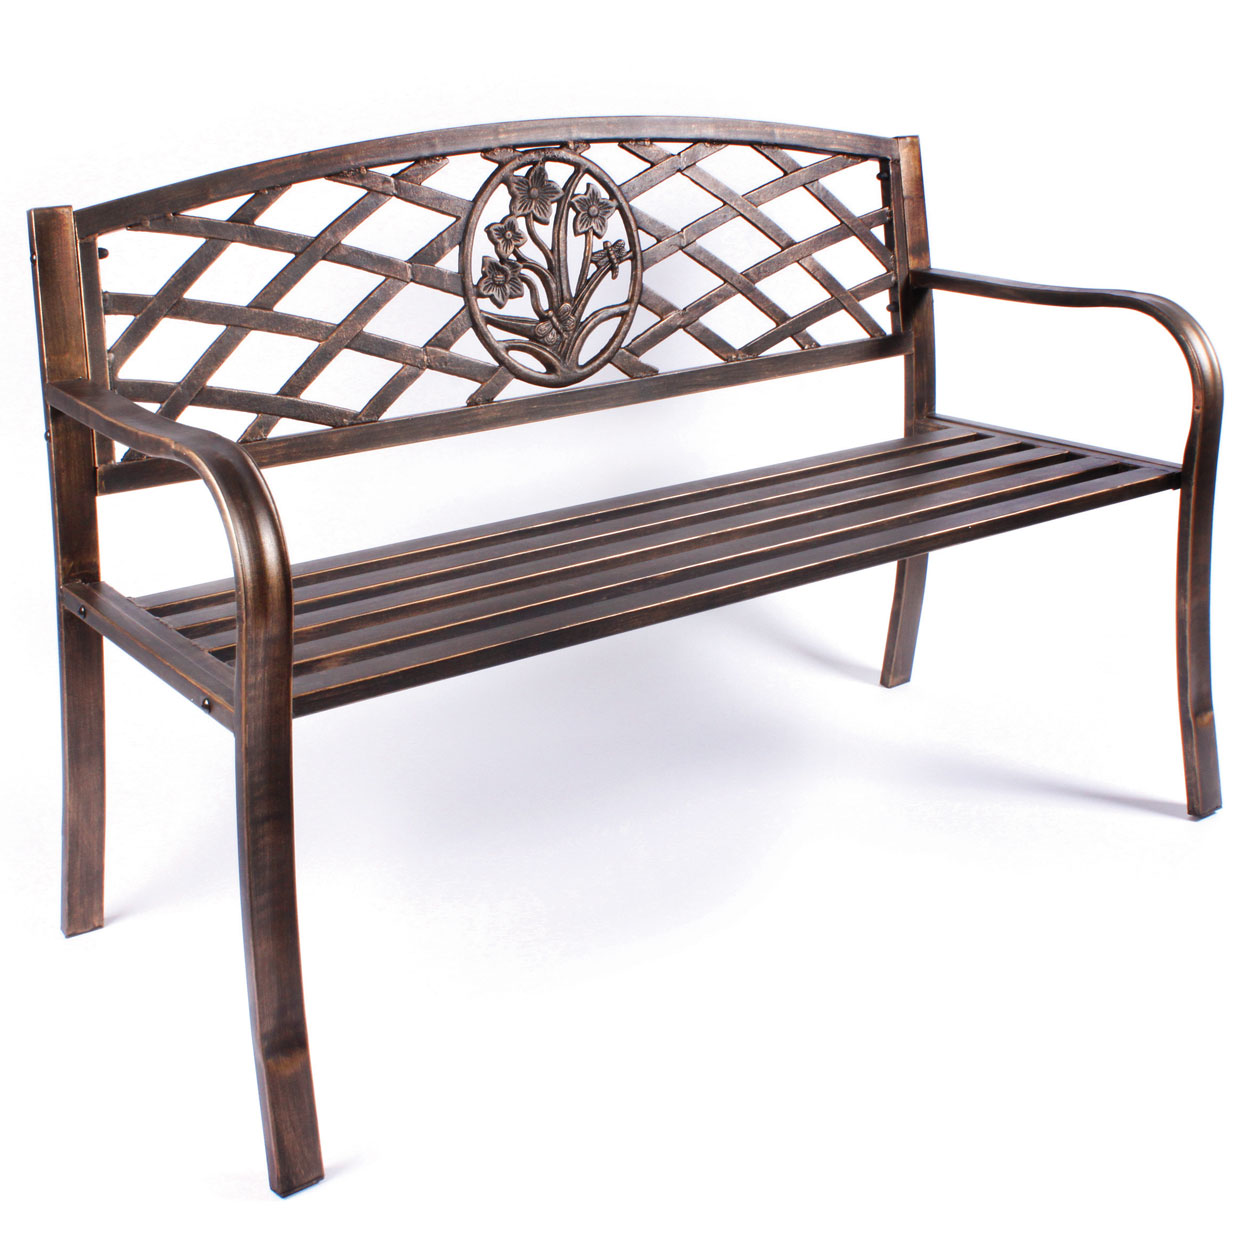 Coopers of Stortford Metal Garden Bench from Coopers of Stortford